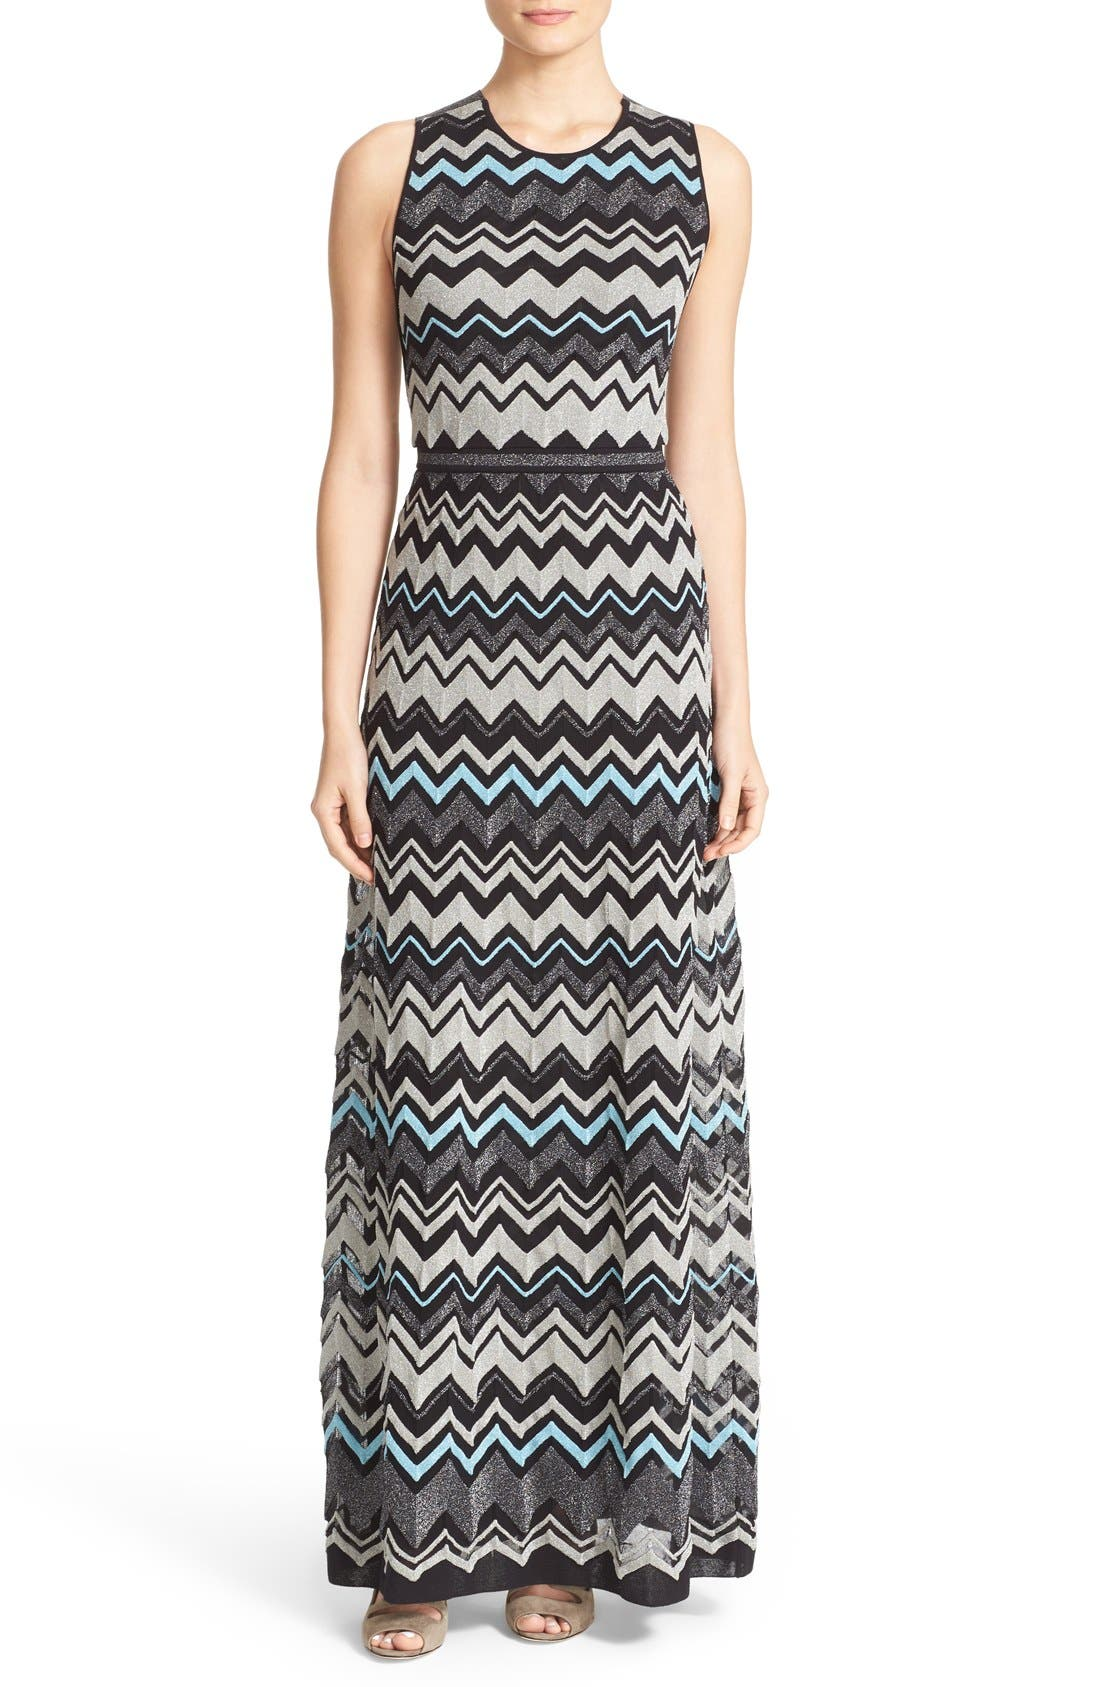 M MISSONI Metallic Zigzag Cross Back Maxi Dress